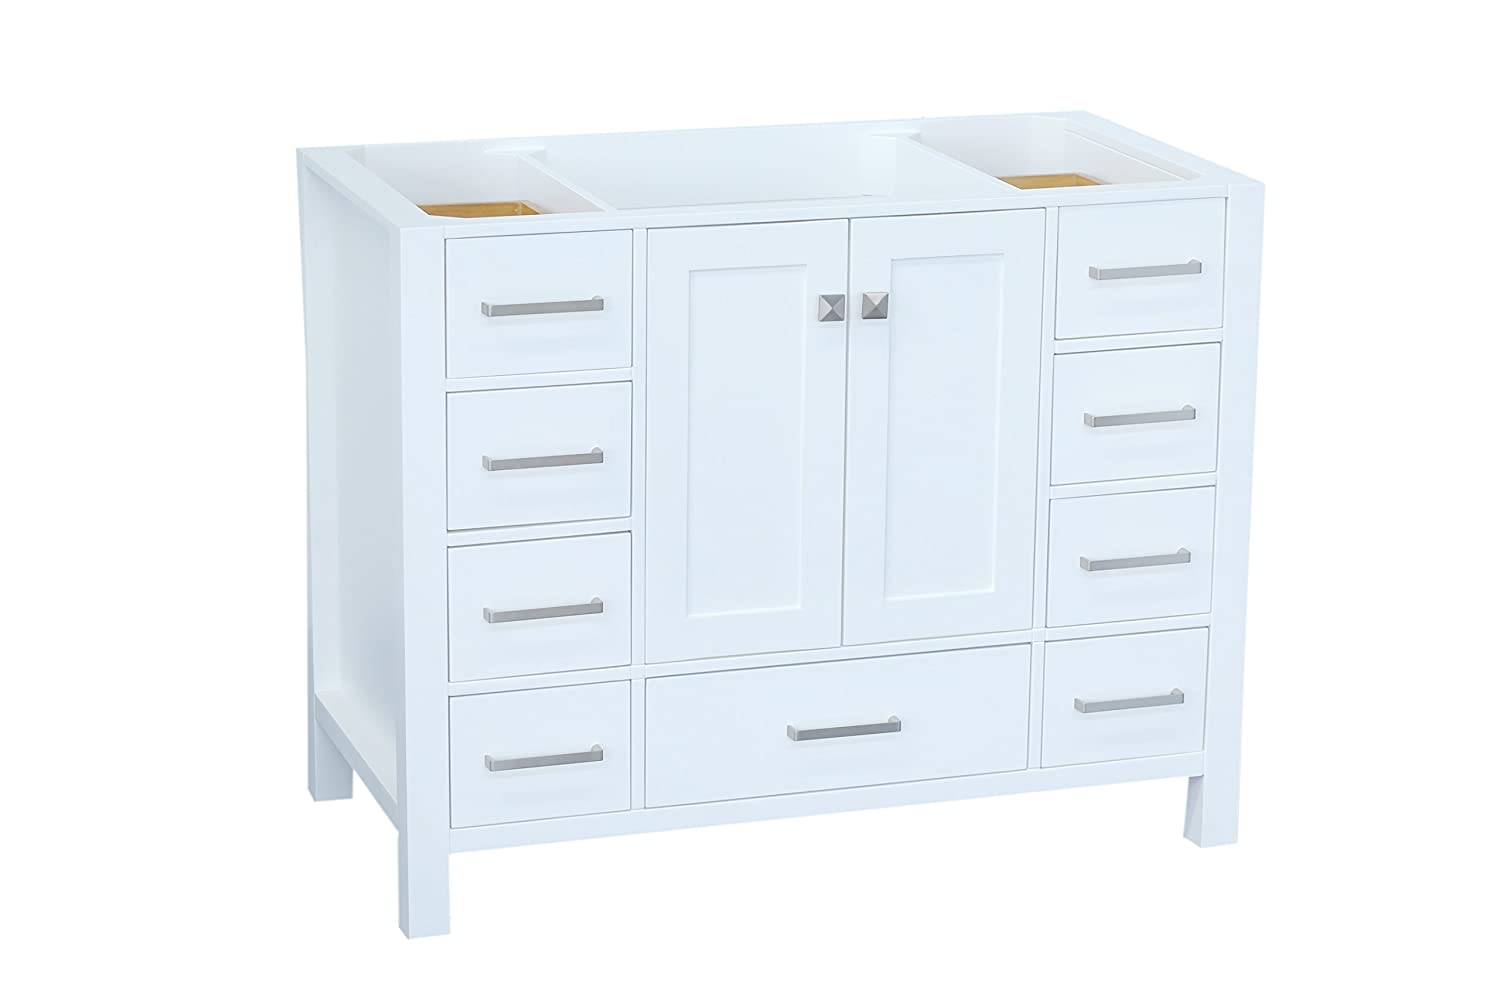 ARIEL Cambridge A043S-BC-WHT 42 Inch Single Solid Wood White Bathroom Vanity Base Cabinet with 2 Soft-Closing Doors and 9 Self-Closing Drawers